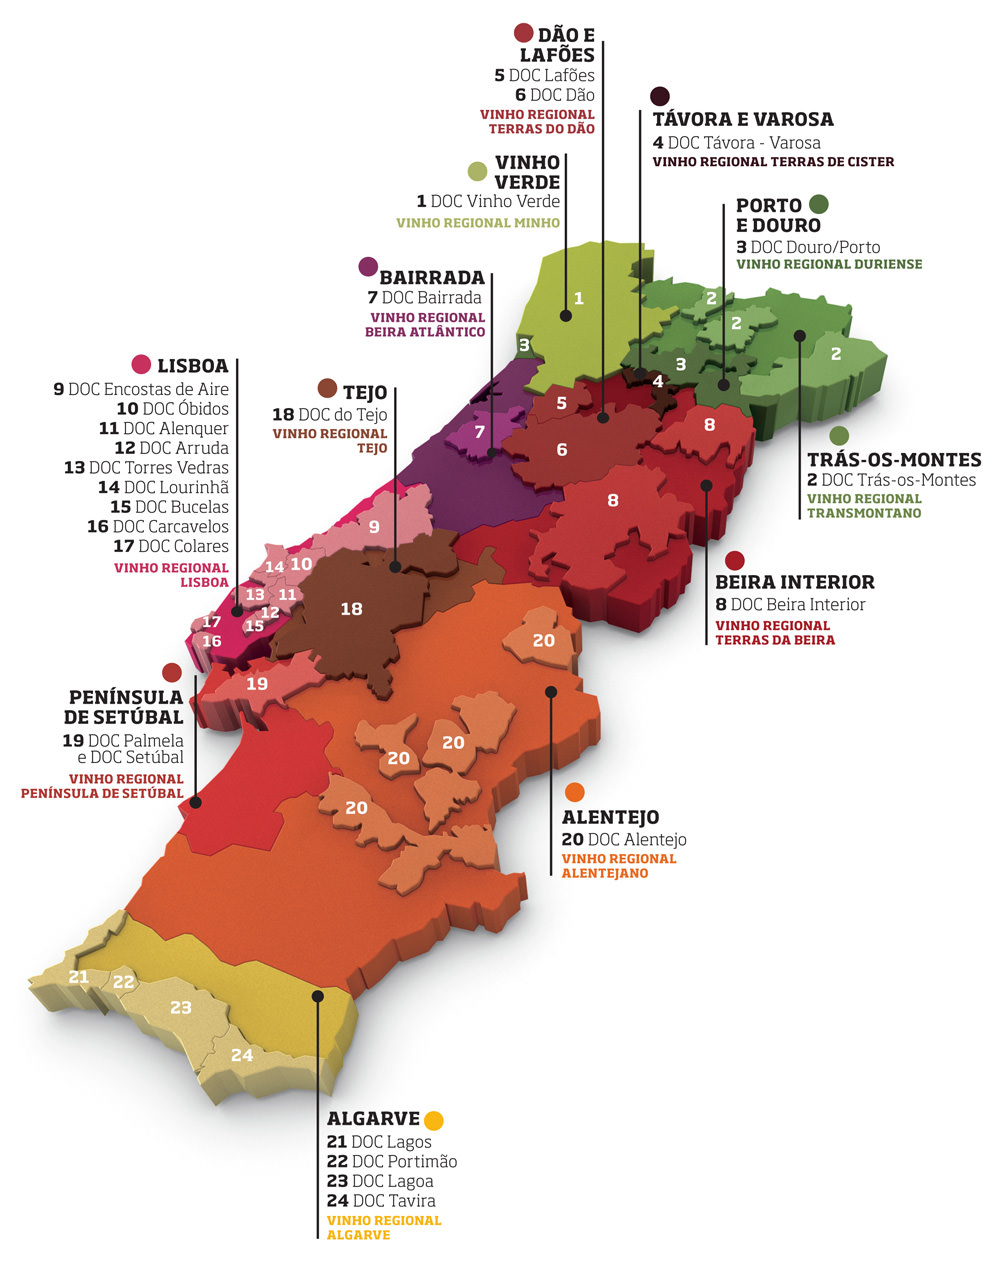 The wine regions of Portugal. Got them all? Good